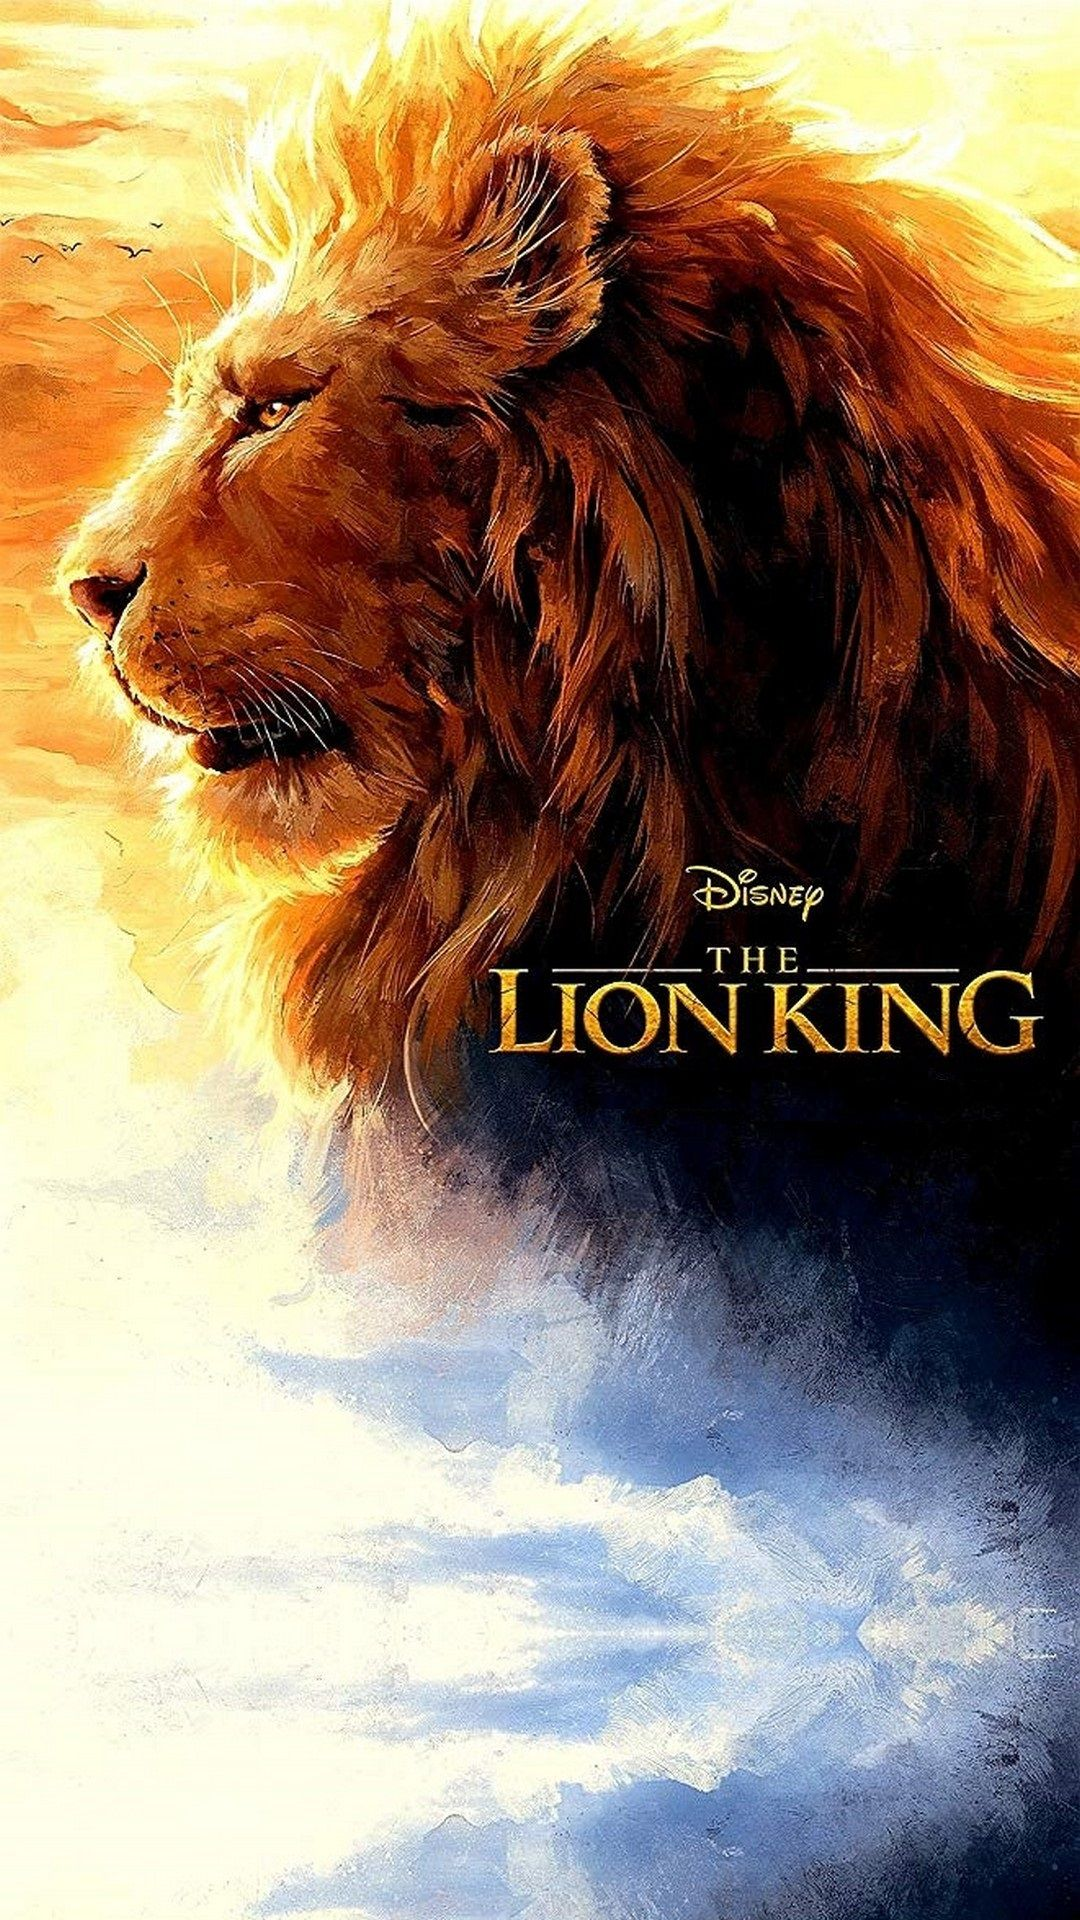 The Lion King 2019 Poster Best Movie Poster Wallpaper Hd